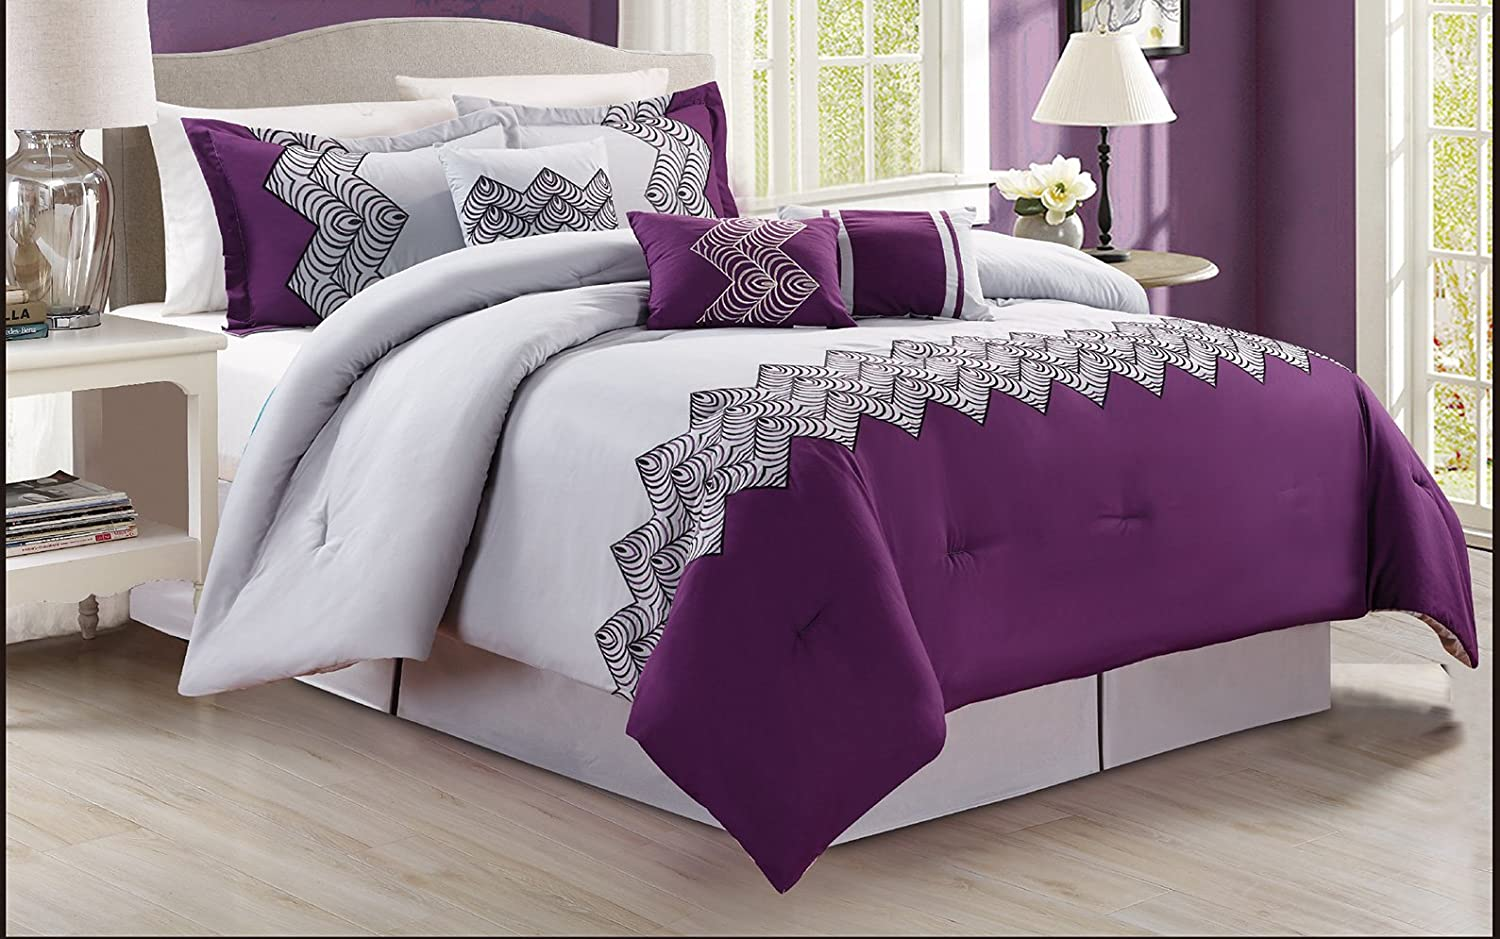 Jasmine Bedding Purple Grey Black Floral Emboidered KING Comforter Set